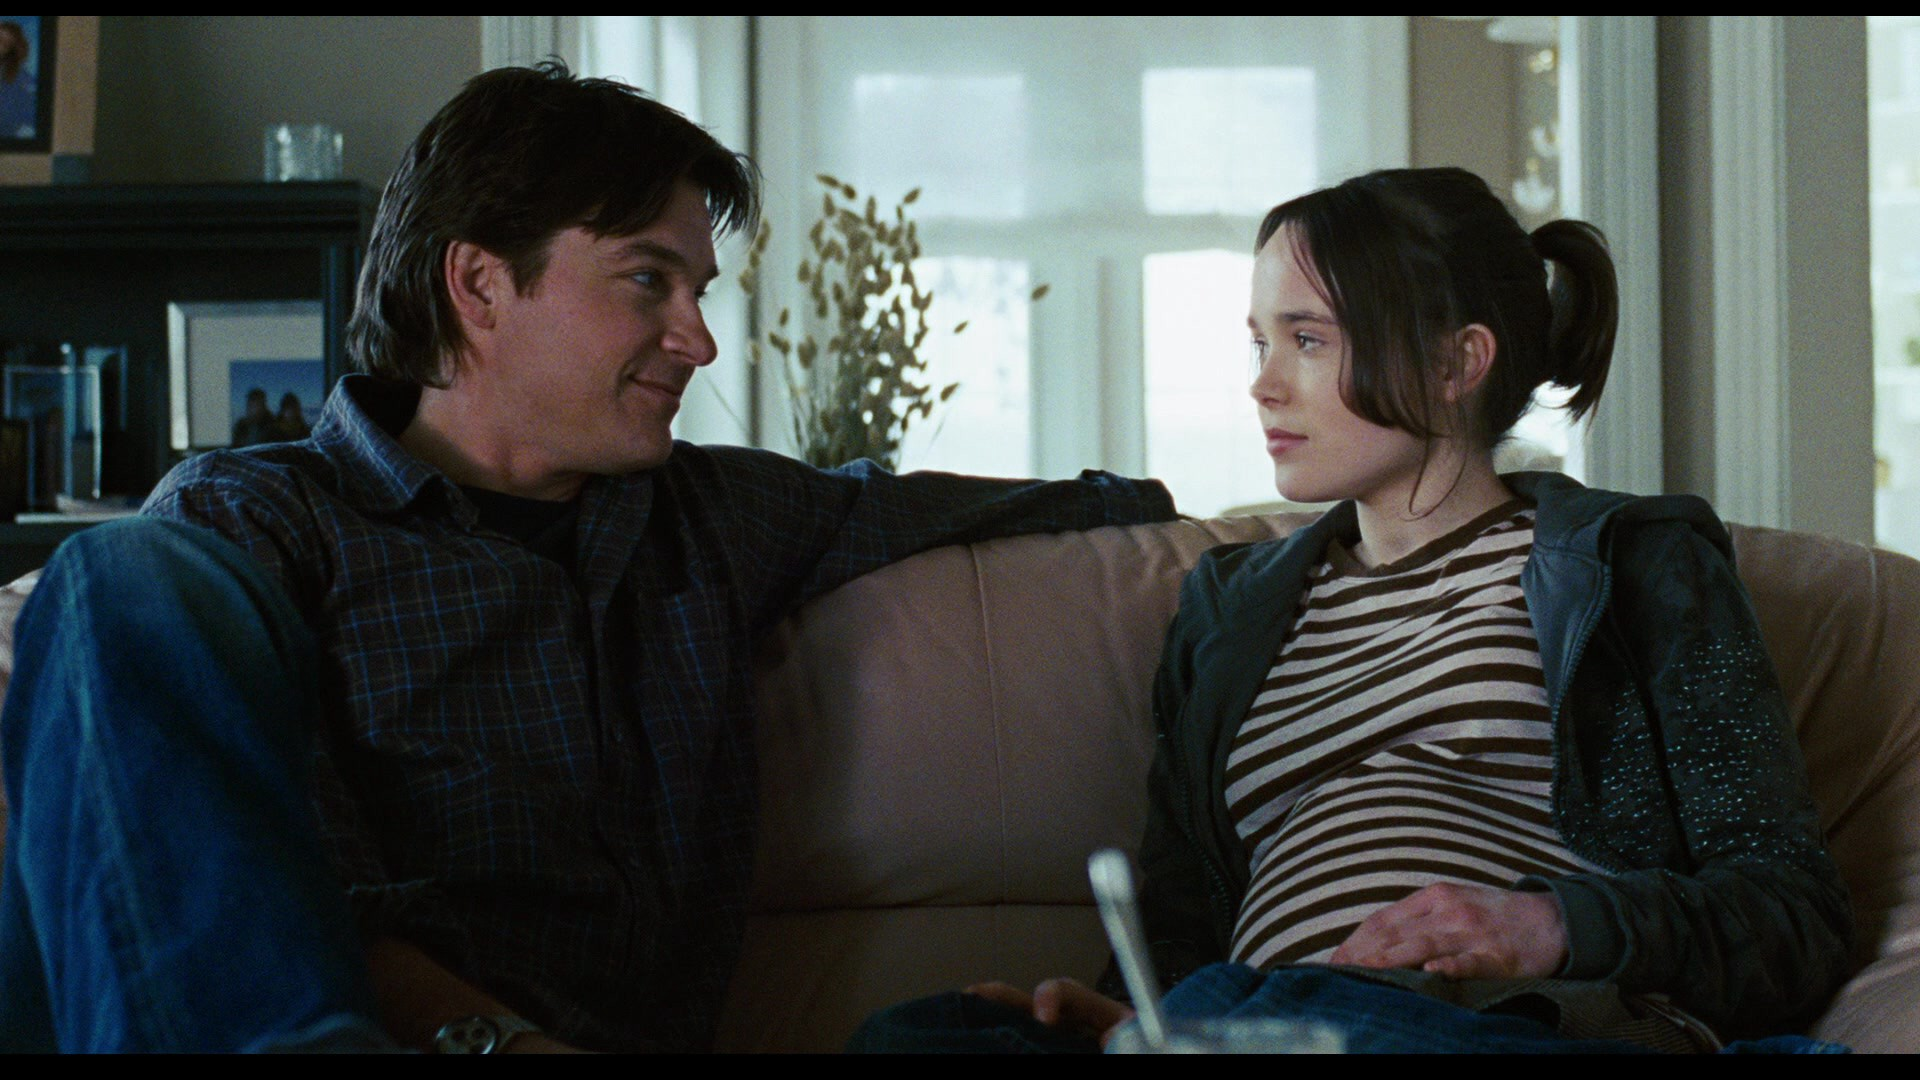 Jason Bateman as Mark Loring and Elliot Page as Juno MacGuff sitting on a couch, looking at each other.